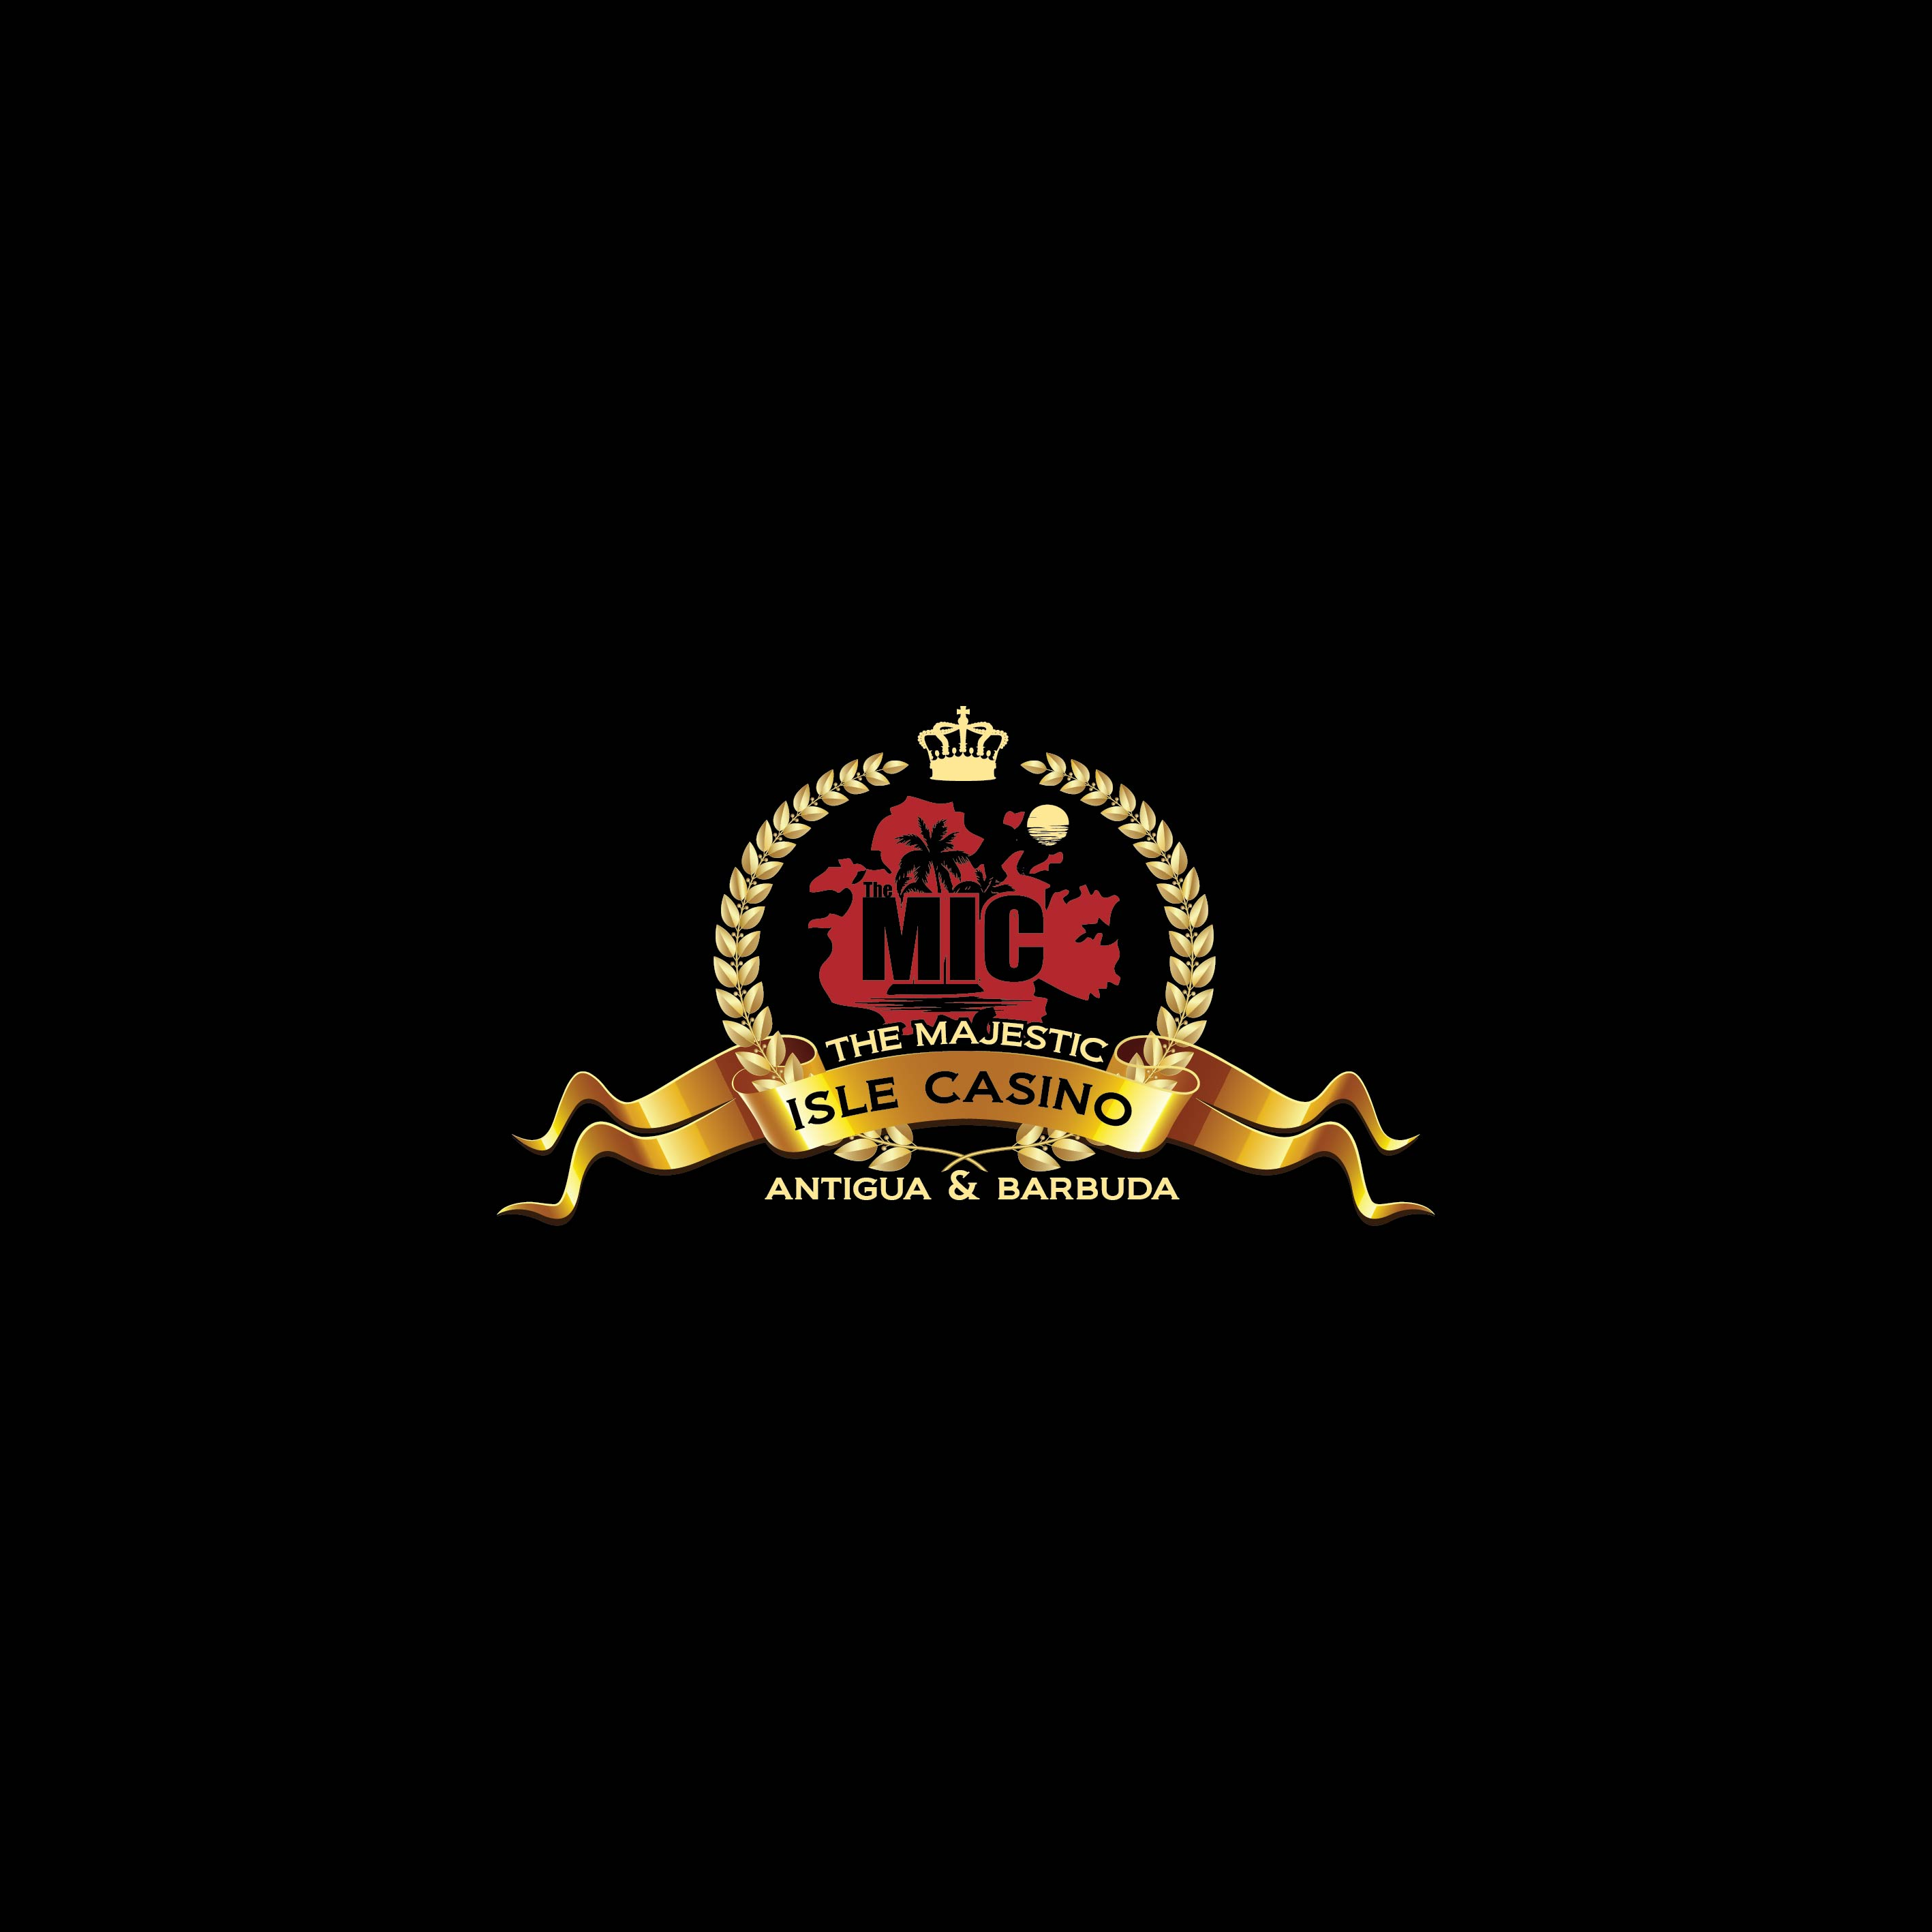 Logo Design by lagalag - Entry No. 13 in the Logo Design Contest New Logo Design for The Majestic Isle Casino.